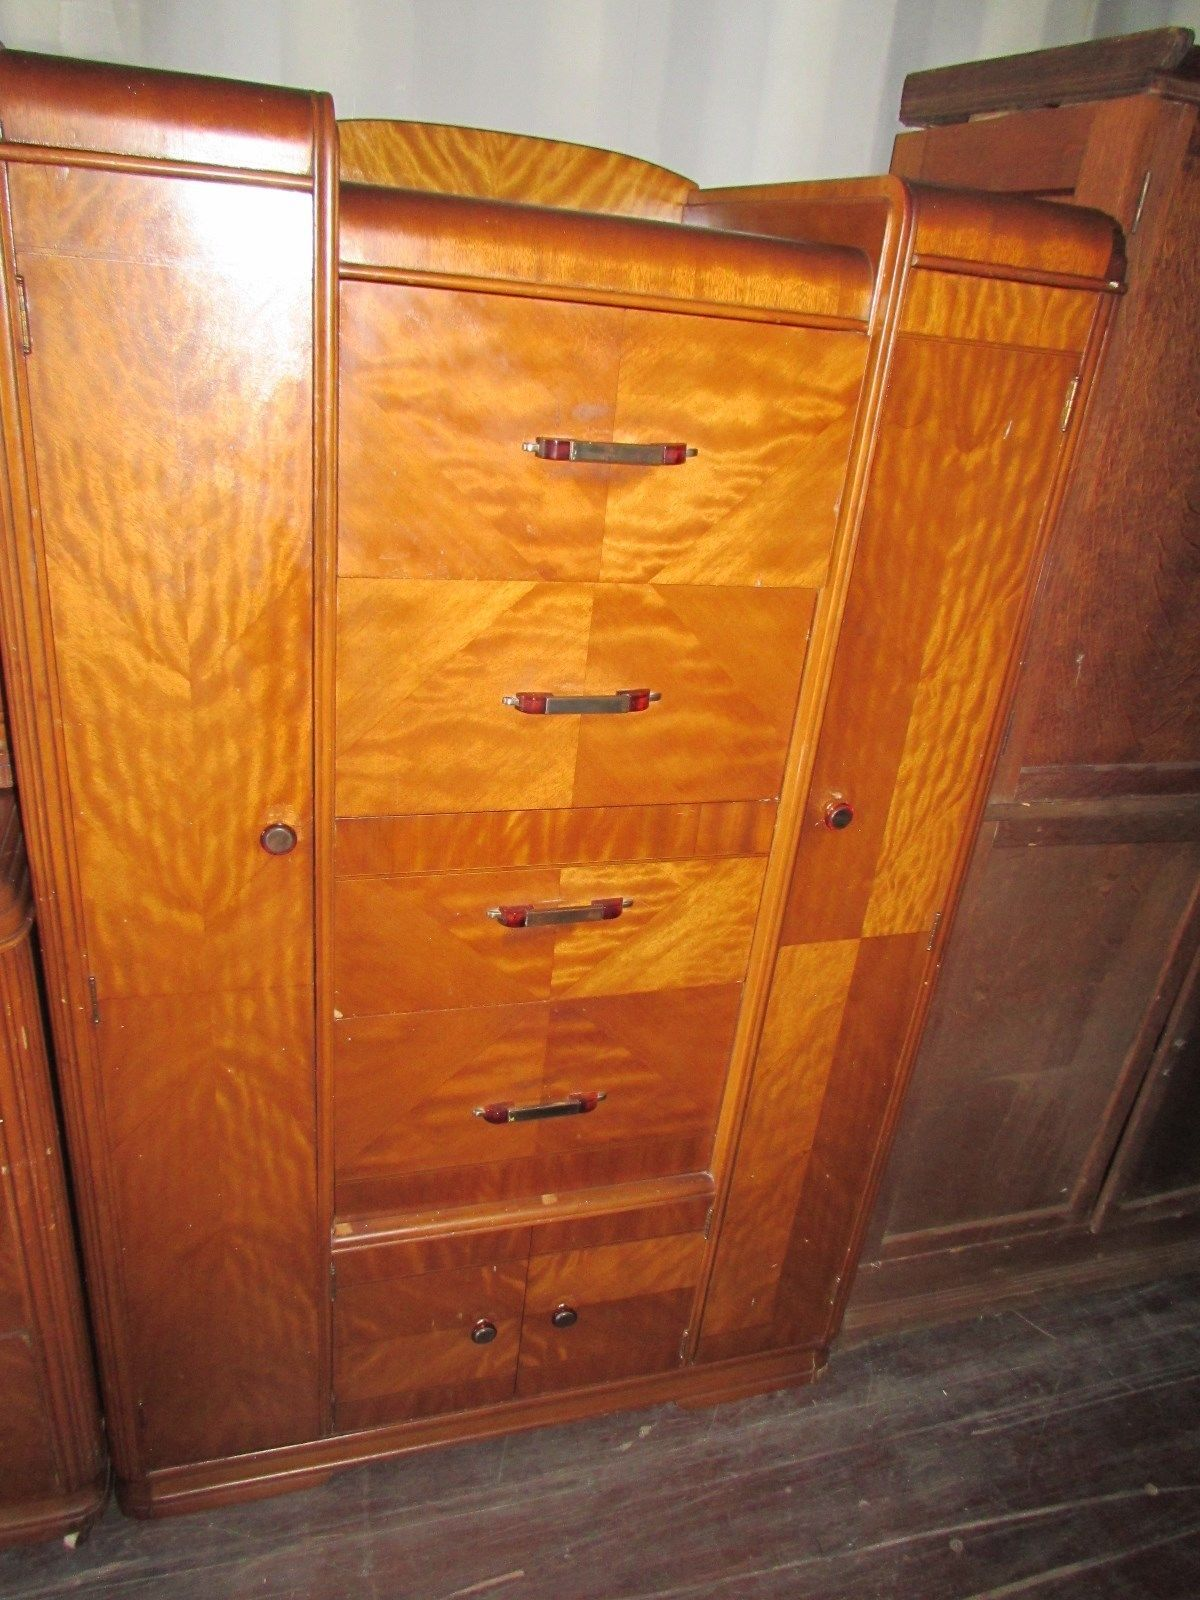 work cedar organized about closet john b pin architect lined all recent murray closets